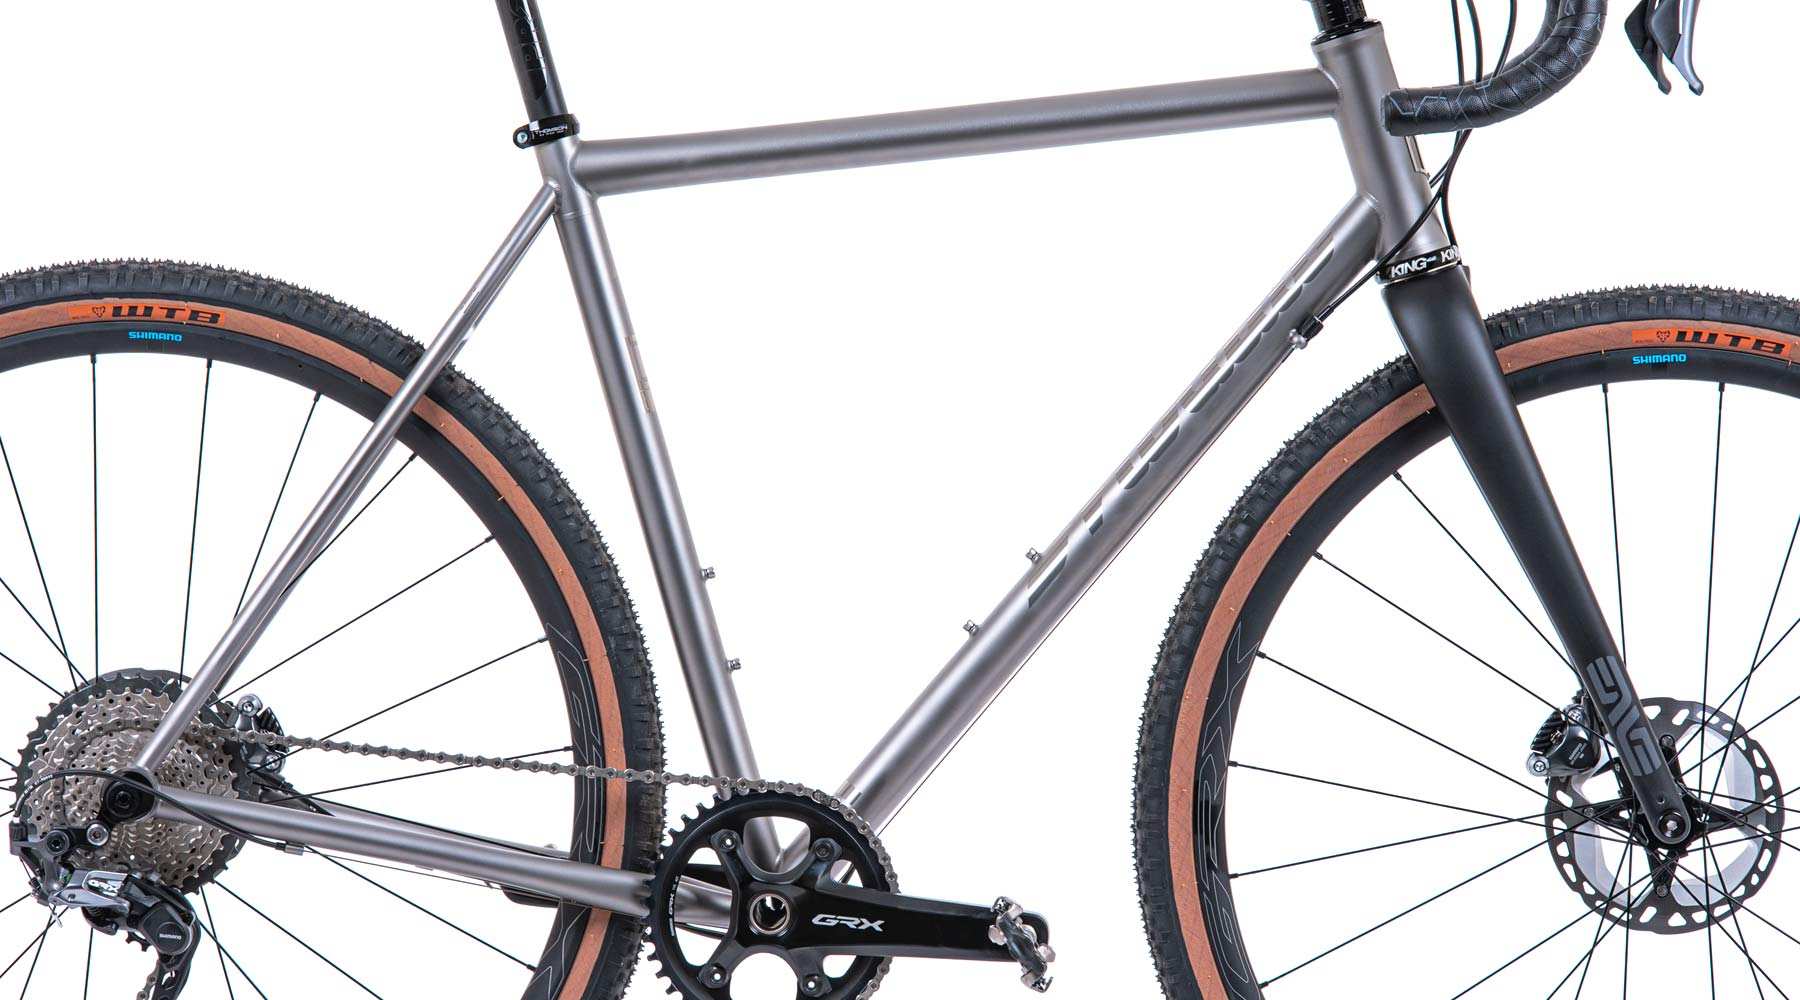 Mosaic stock Gravel Series bike_US-made handcrafted gravel all-road bikes